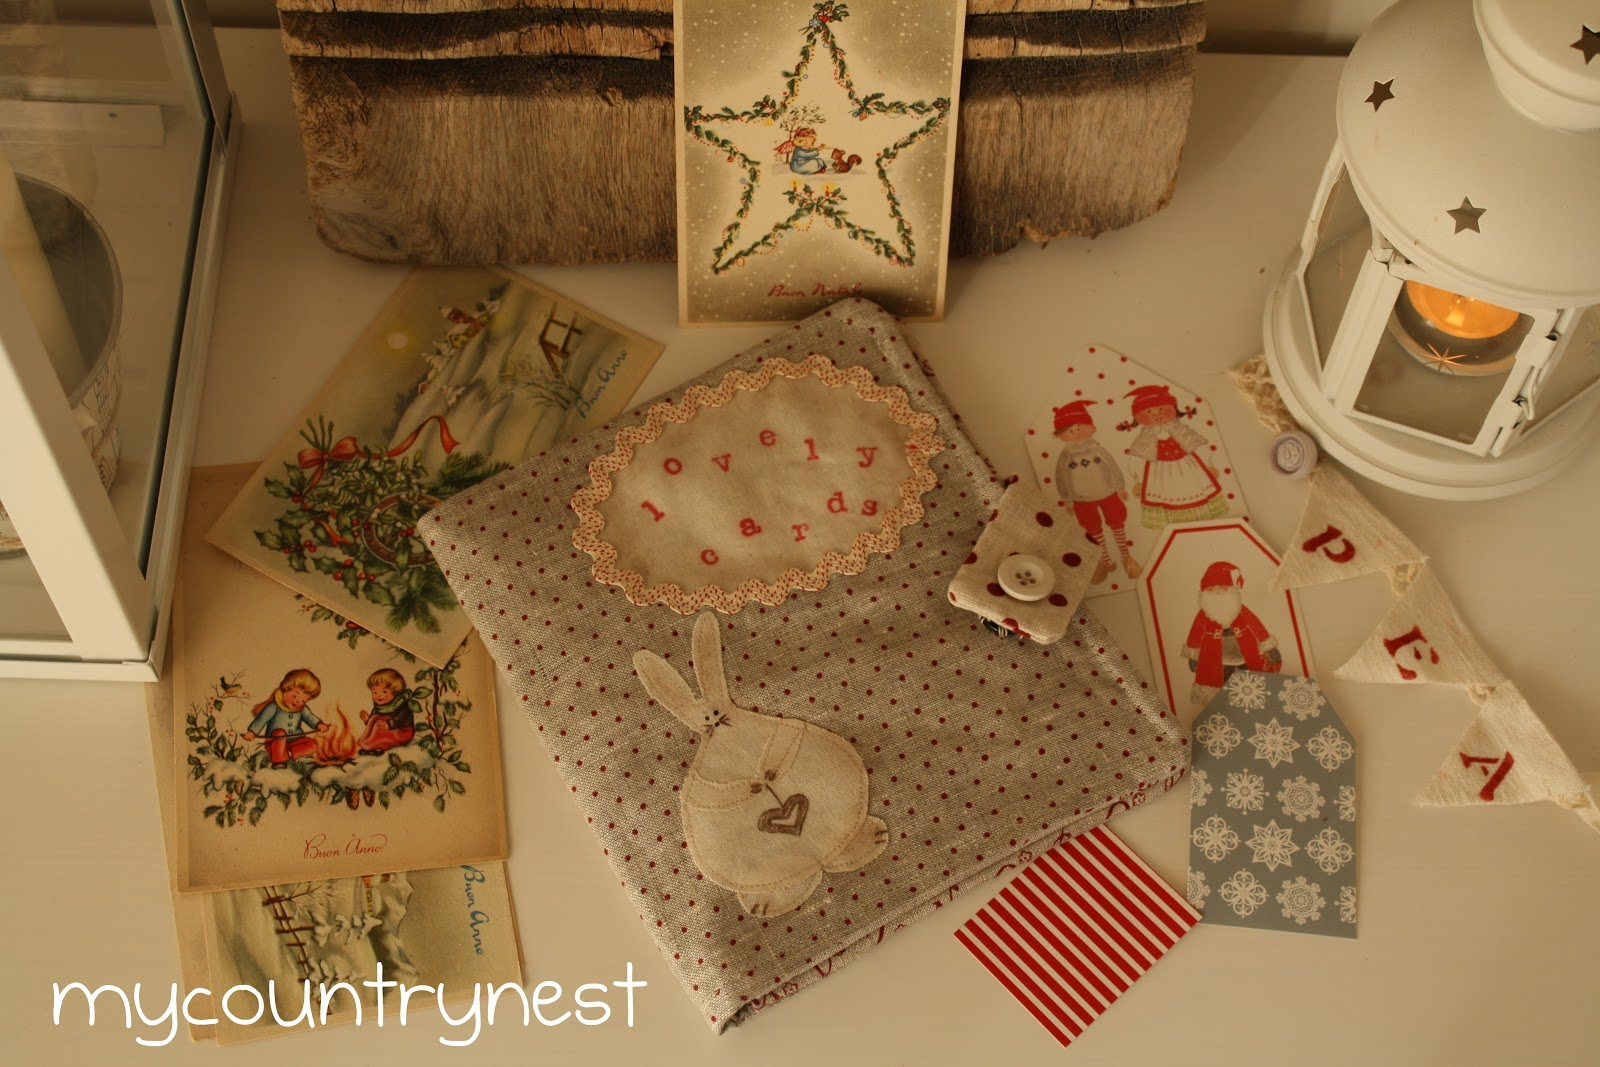 my country nest lovely cards for country dreams